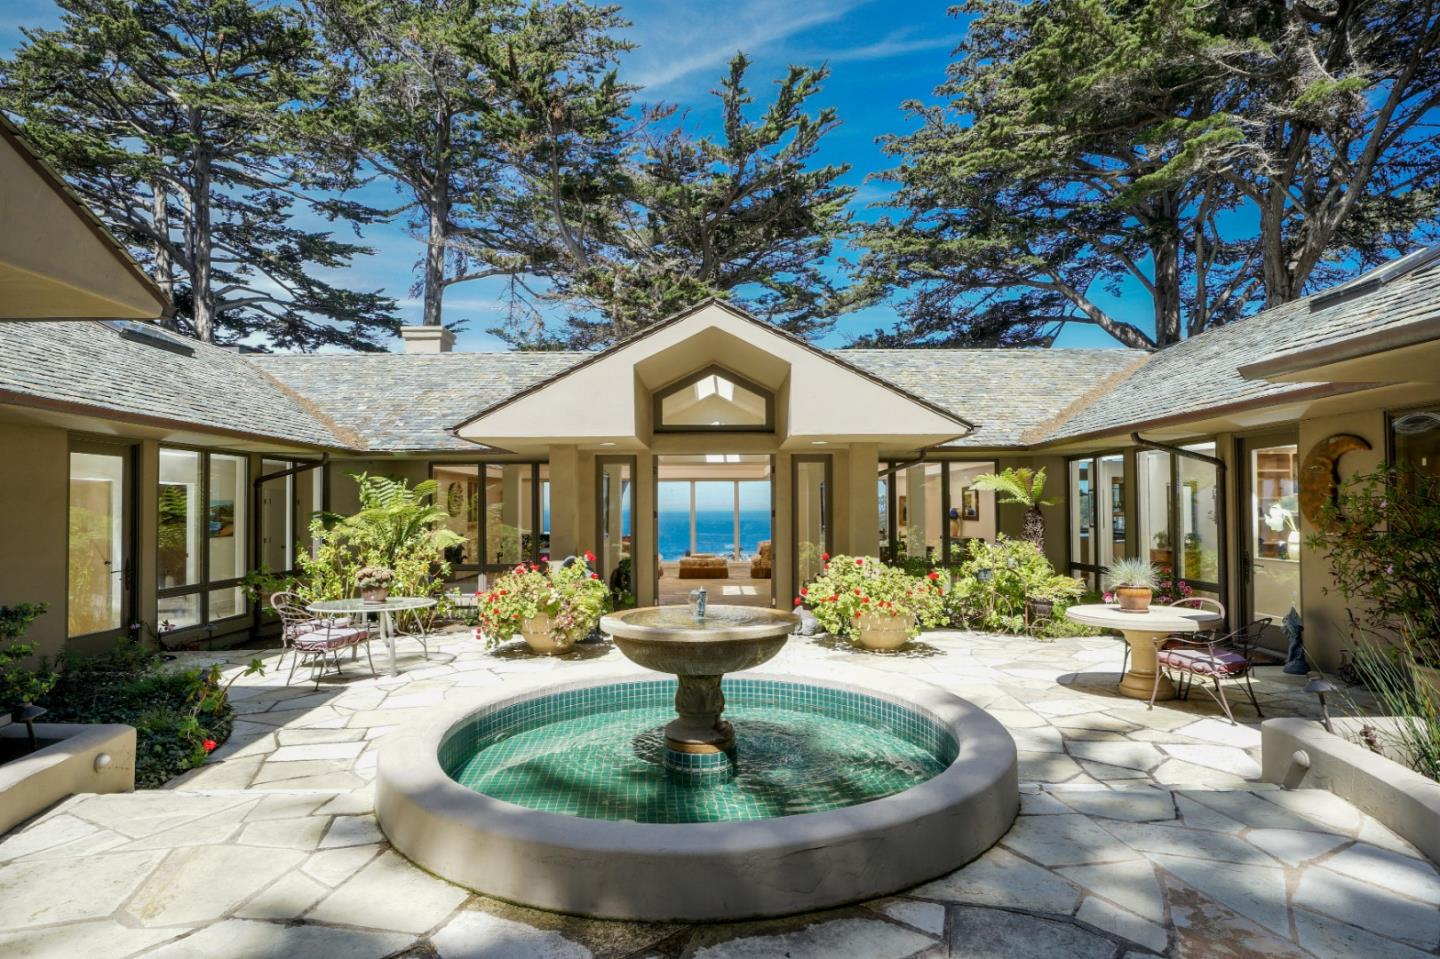 Property for sale at 29798 Highway 1, Carmel Highlands,  California 93923